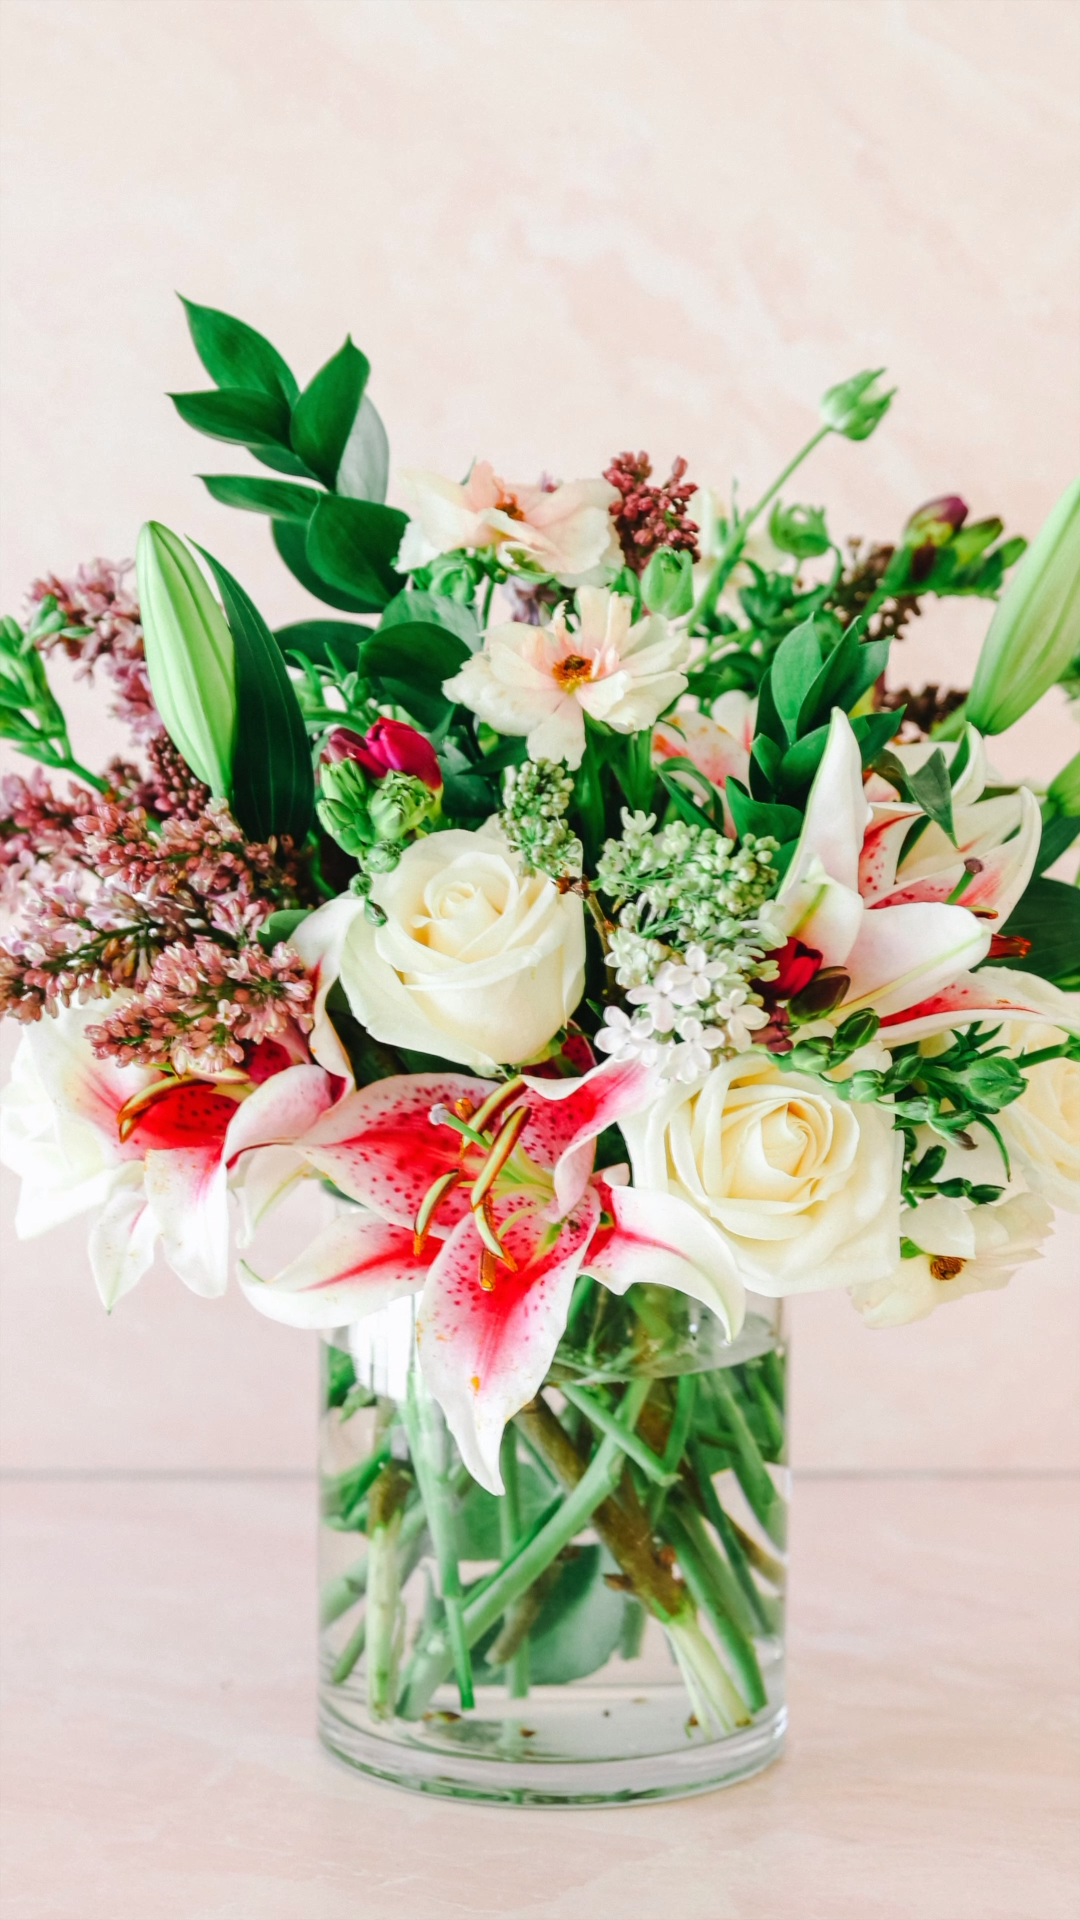 Supermarket flower arrangement! Grocery store flowers made into an arrangement for mother's day! How to arrange store bought flowers. #mothersday #flowers #flowerbouquet #grocerystoreflowers